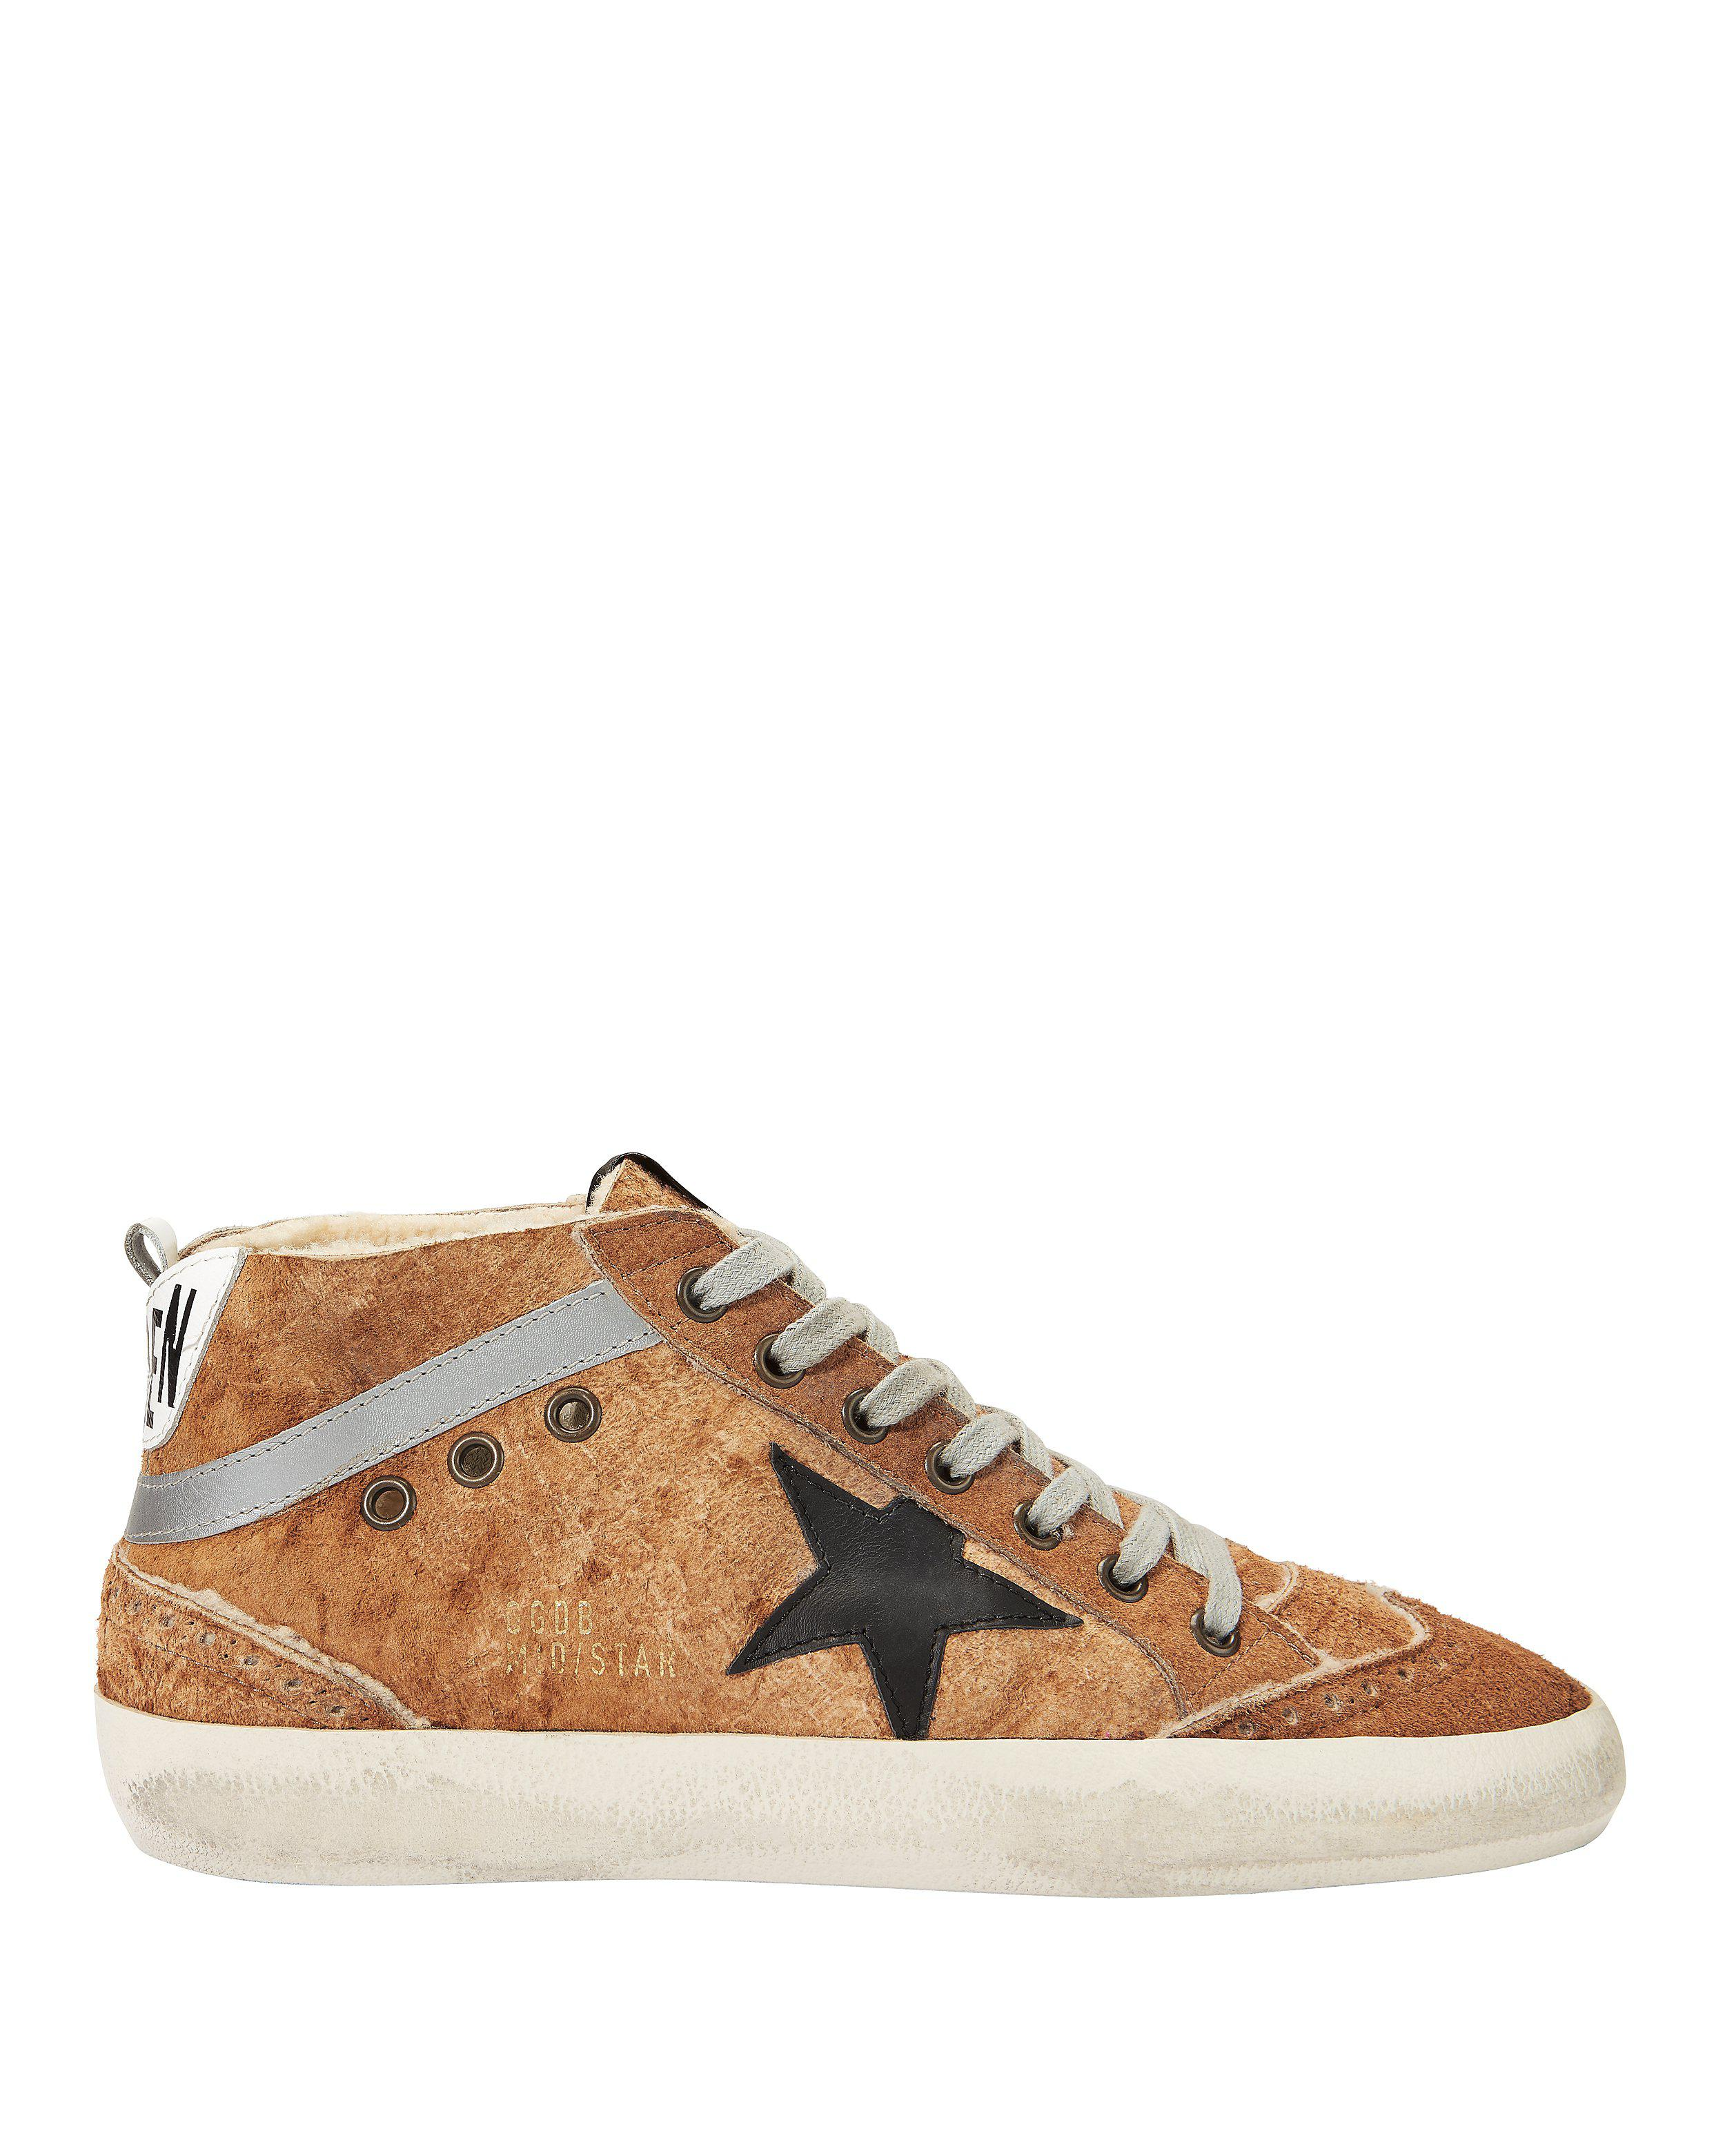 5715ac922ee78 Lyst - Golden Goose Deluxe Brand Mid Star Brown Leather And ...